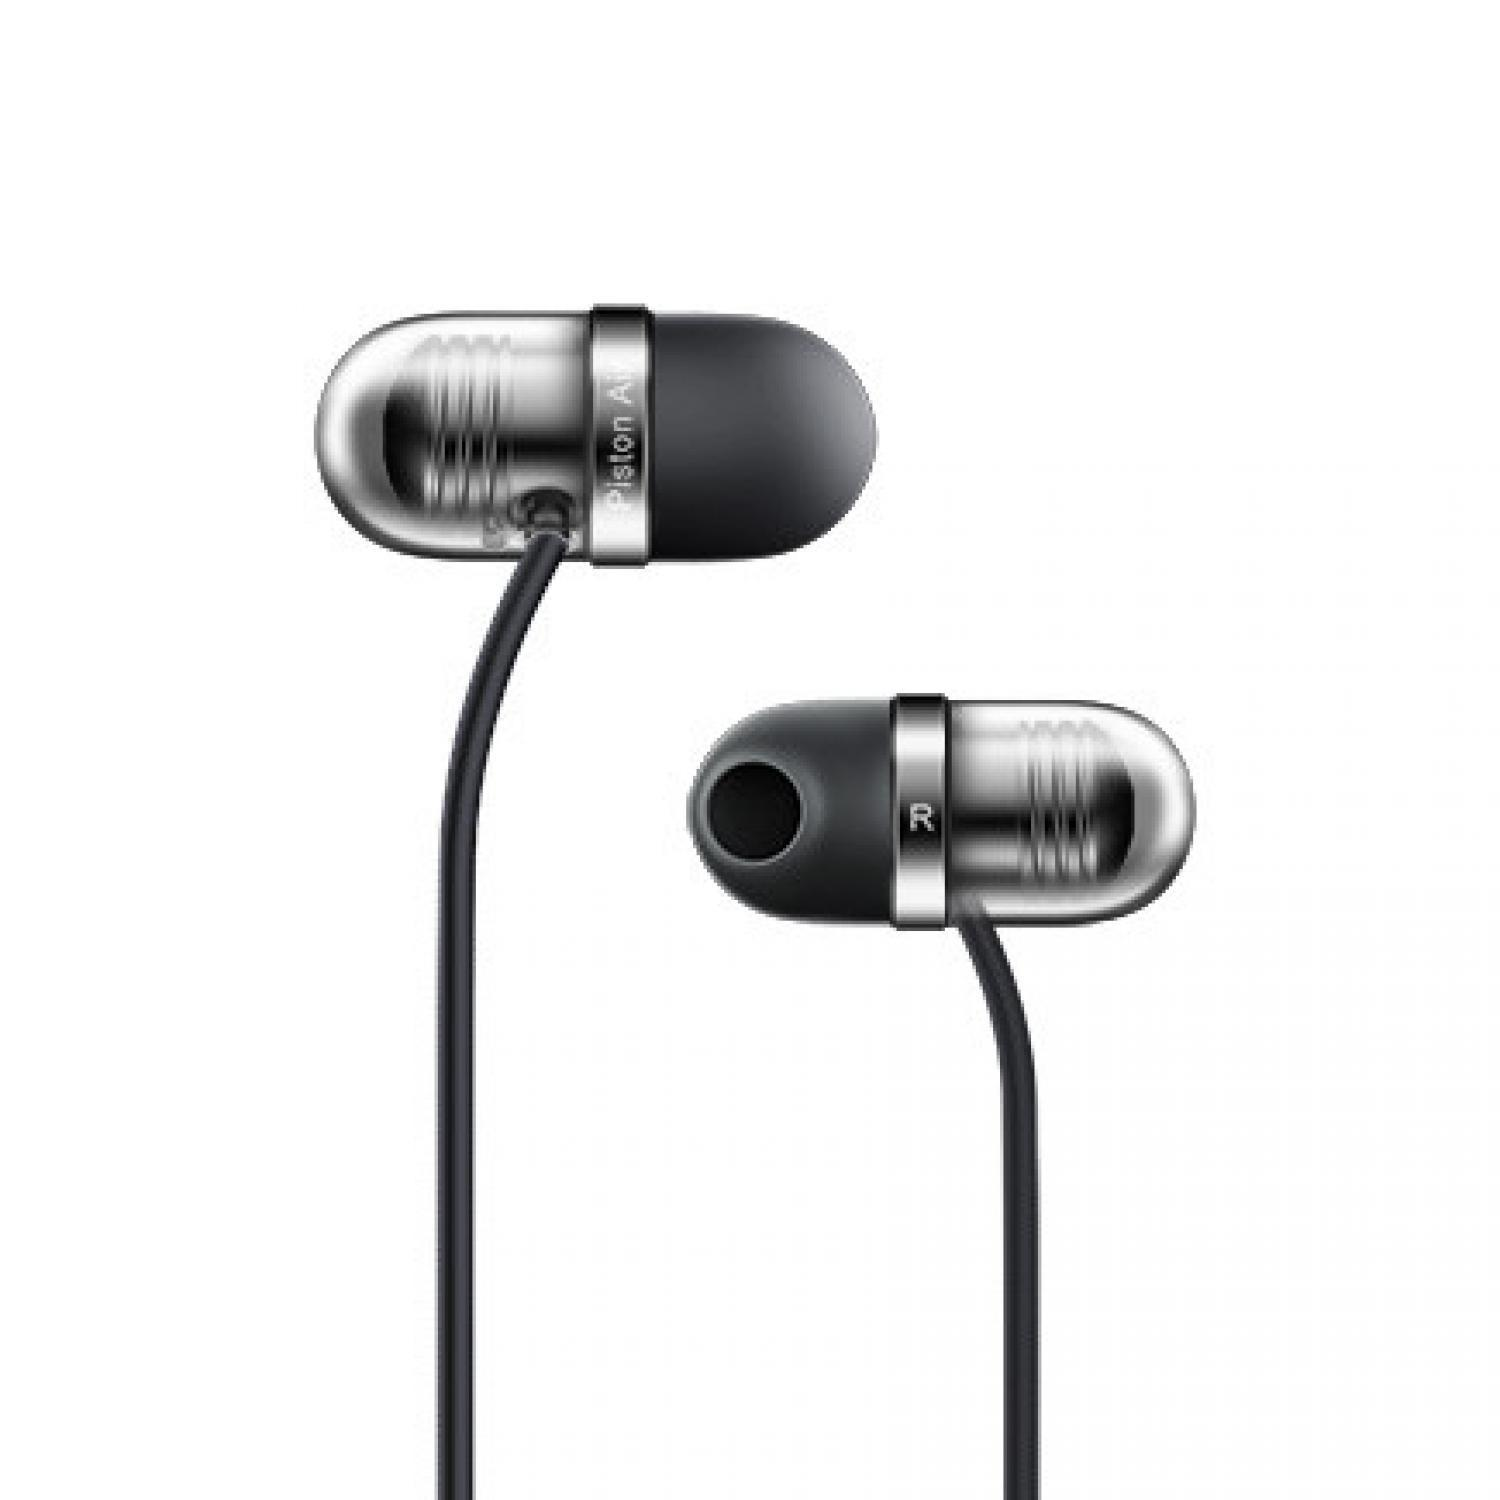 Buy Sell Cheapest Promo Piston Fill Best Quality Product Deals Xiaomi Mi Huosai 2 Earphone Colorful Edition Original Air Capsule With Microphone